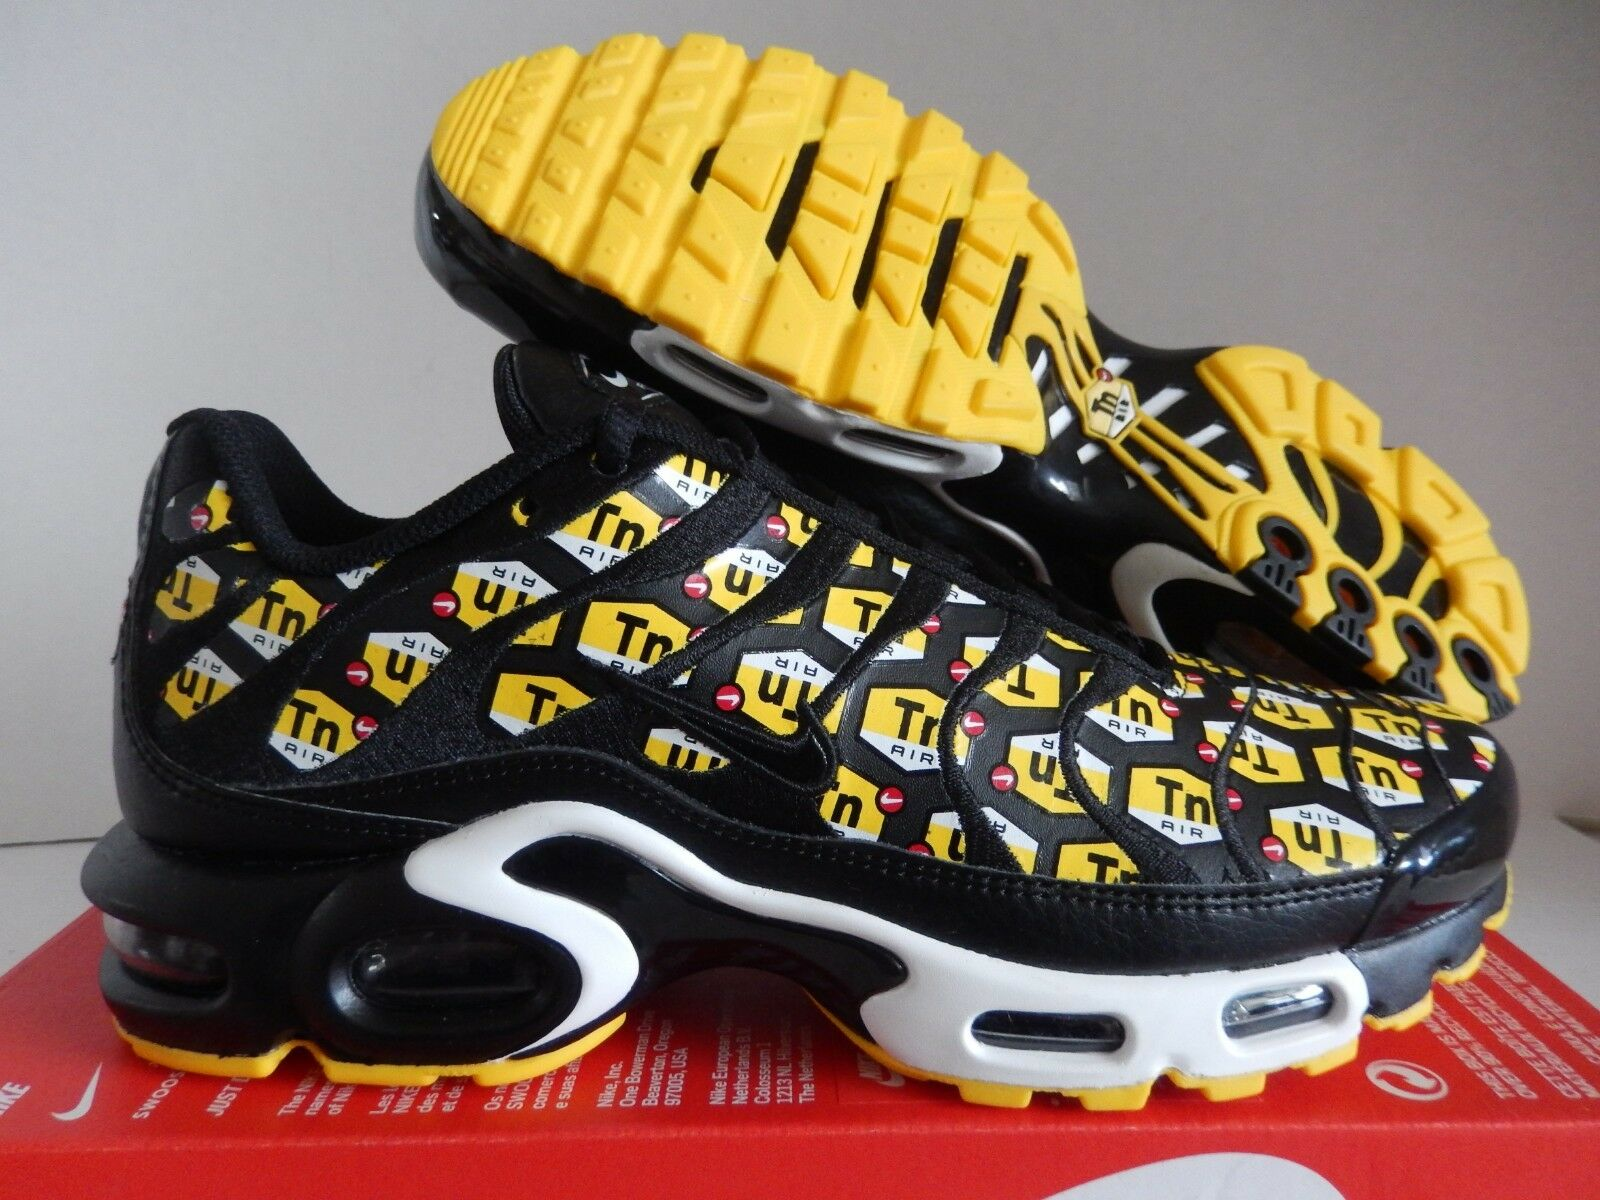 NIKE AIR MAX PLUS QS  QUICKSTRIKE   TN TUNED AIR  BLACK SZ 10.5 [903827-002]